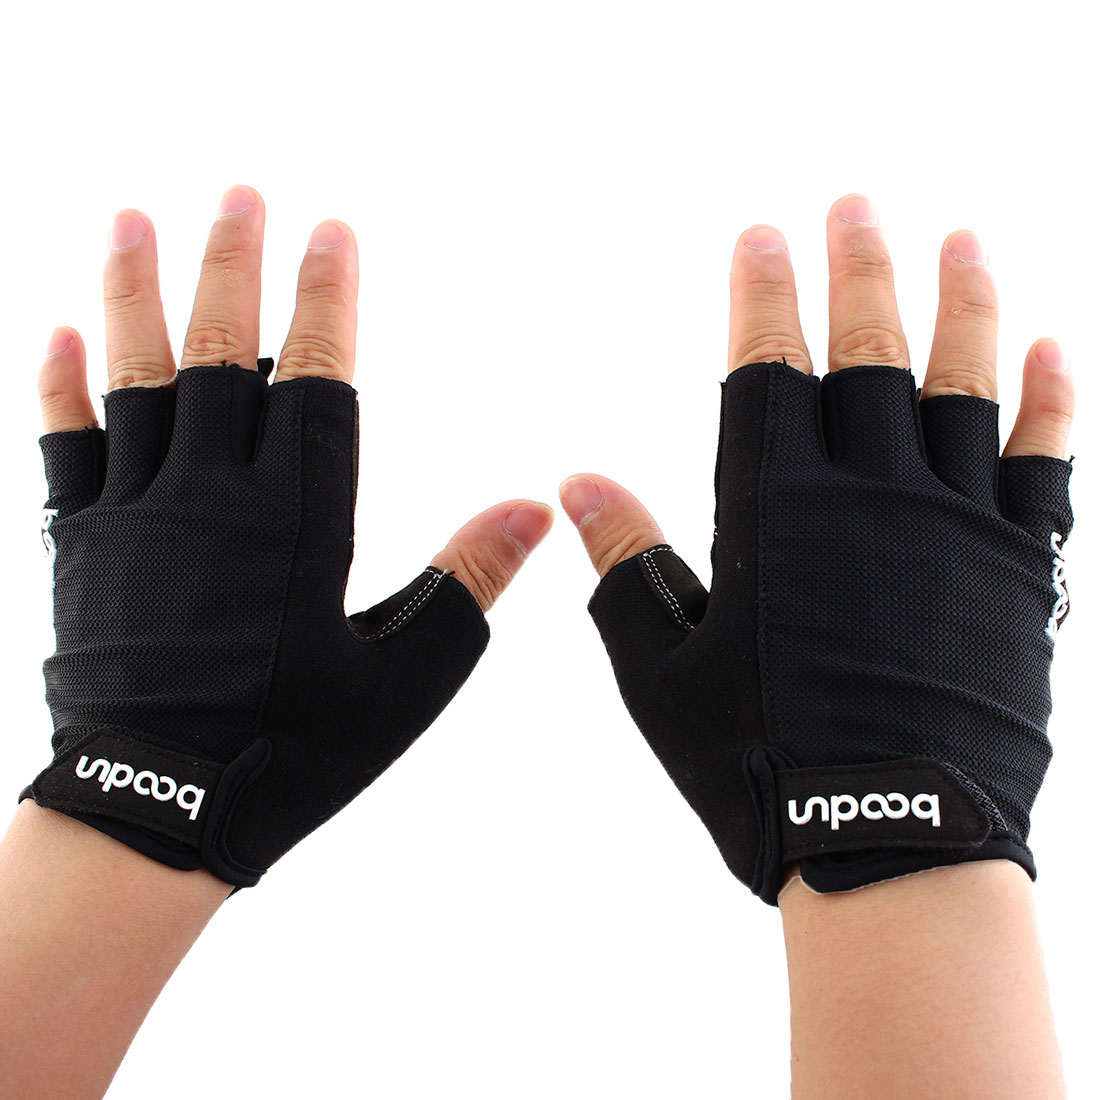 Boodun Authorized Outdoor Cycling Gym Workout Training Weight Lifting Half Finger Gloves Black Size M Pair for Men Women